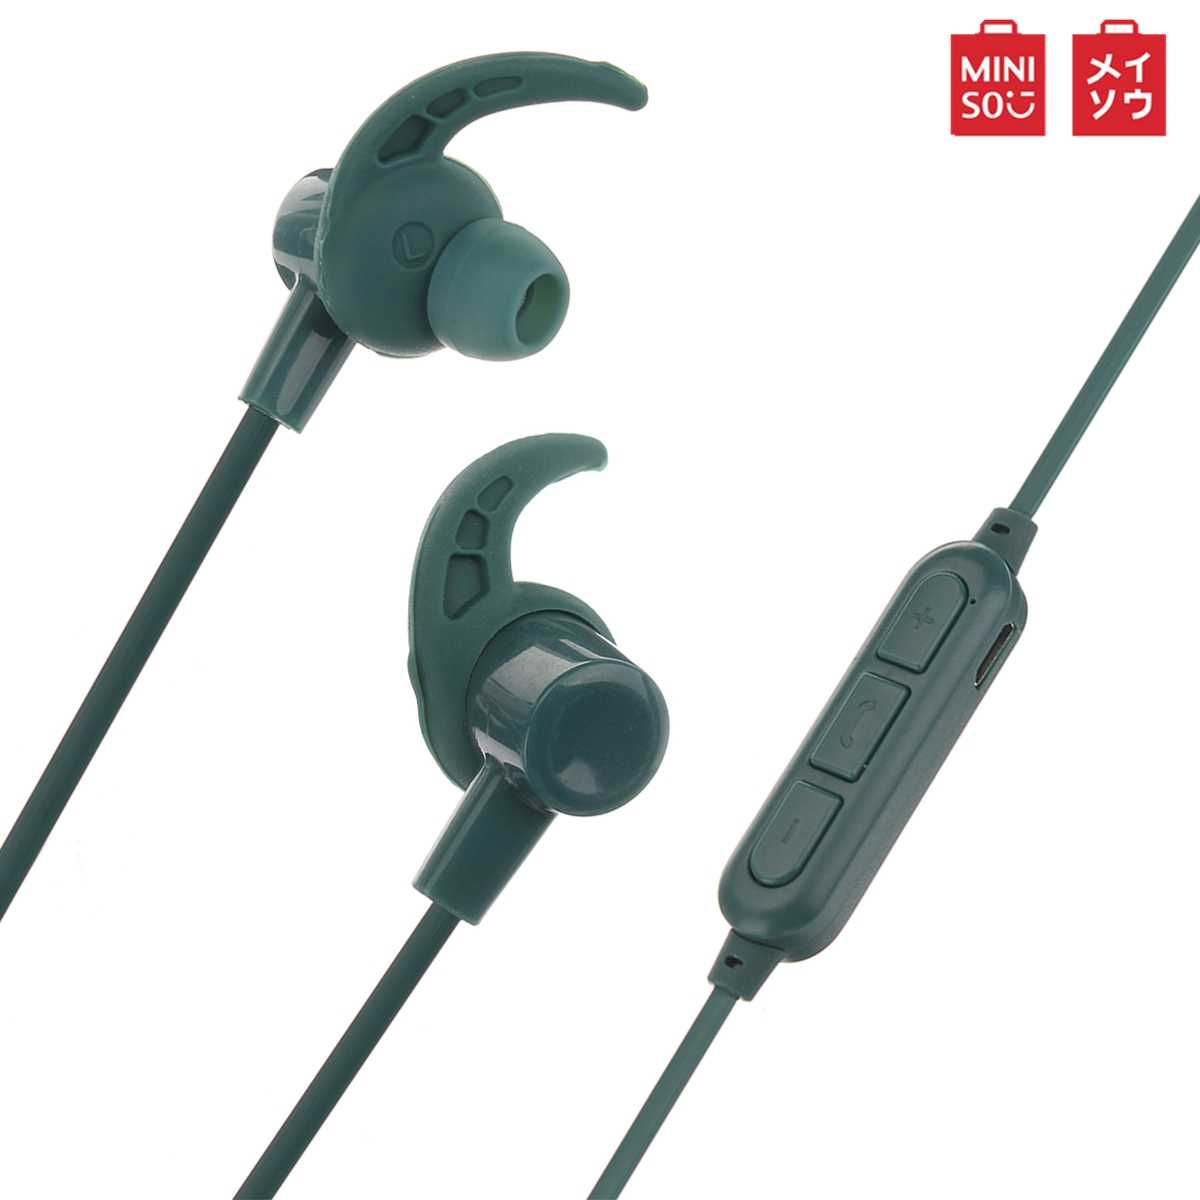 Miniso BT307 Magnetik Nirkabel Headphone Bluetooth Earphone Stereo Earphone Sport Headset Concision Style untuk Ponsel